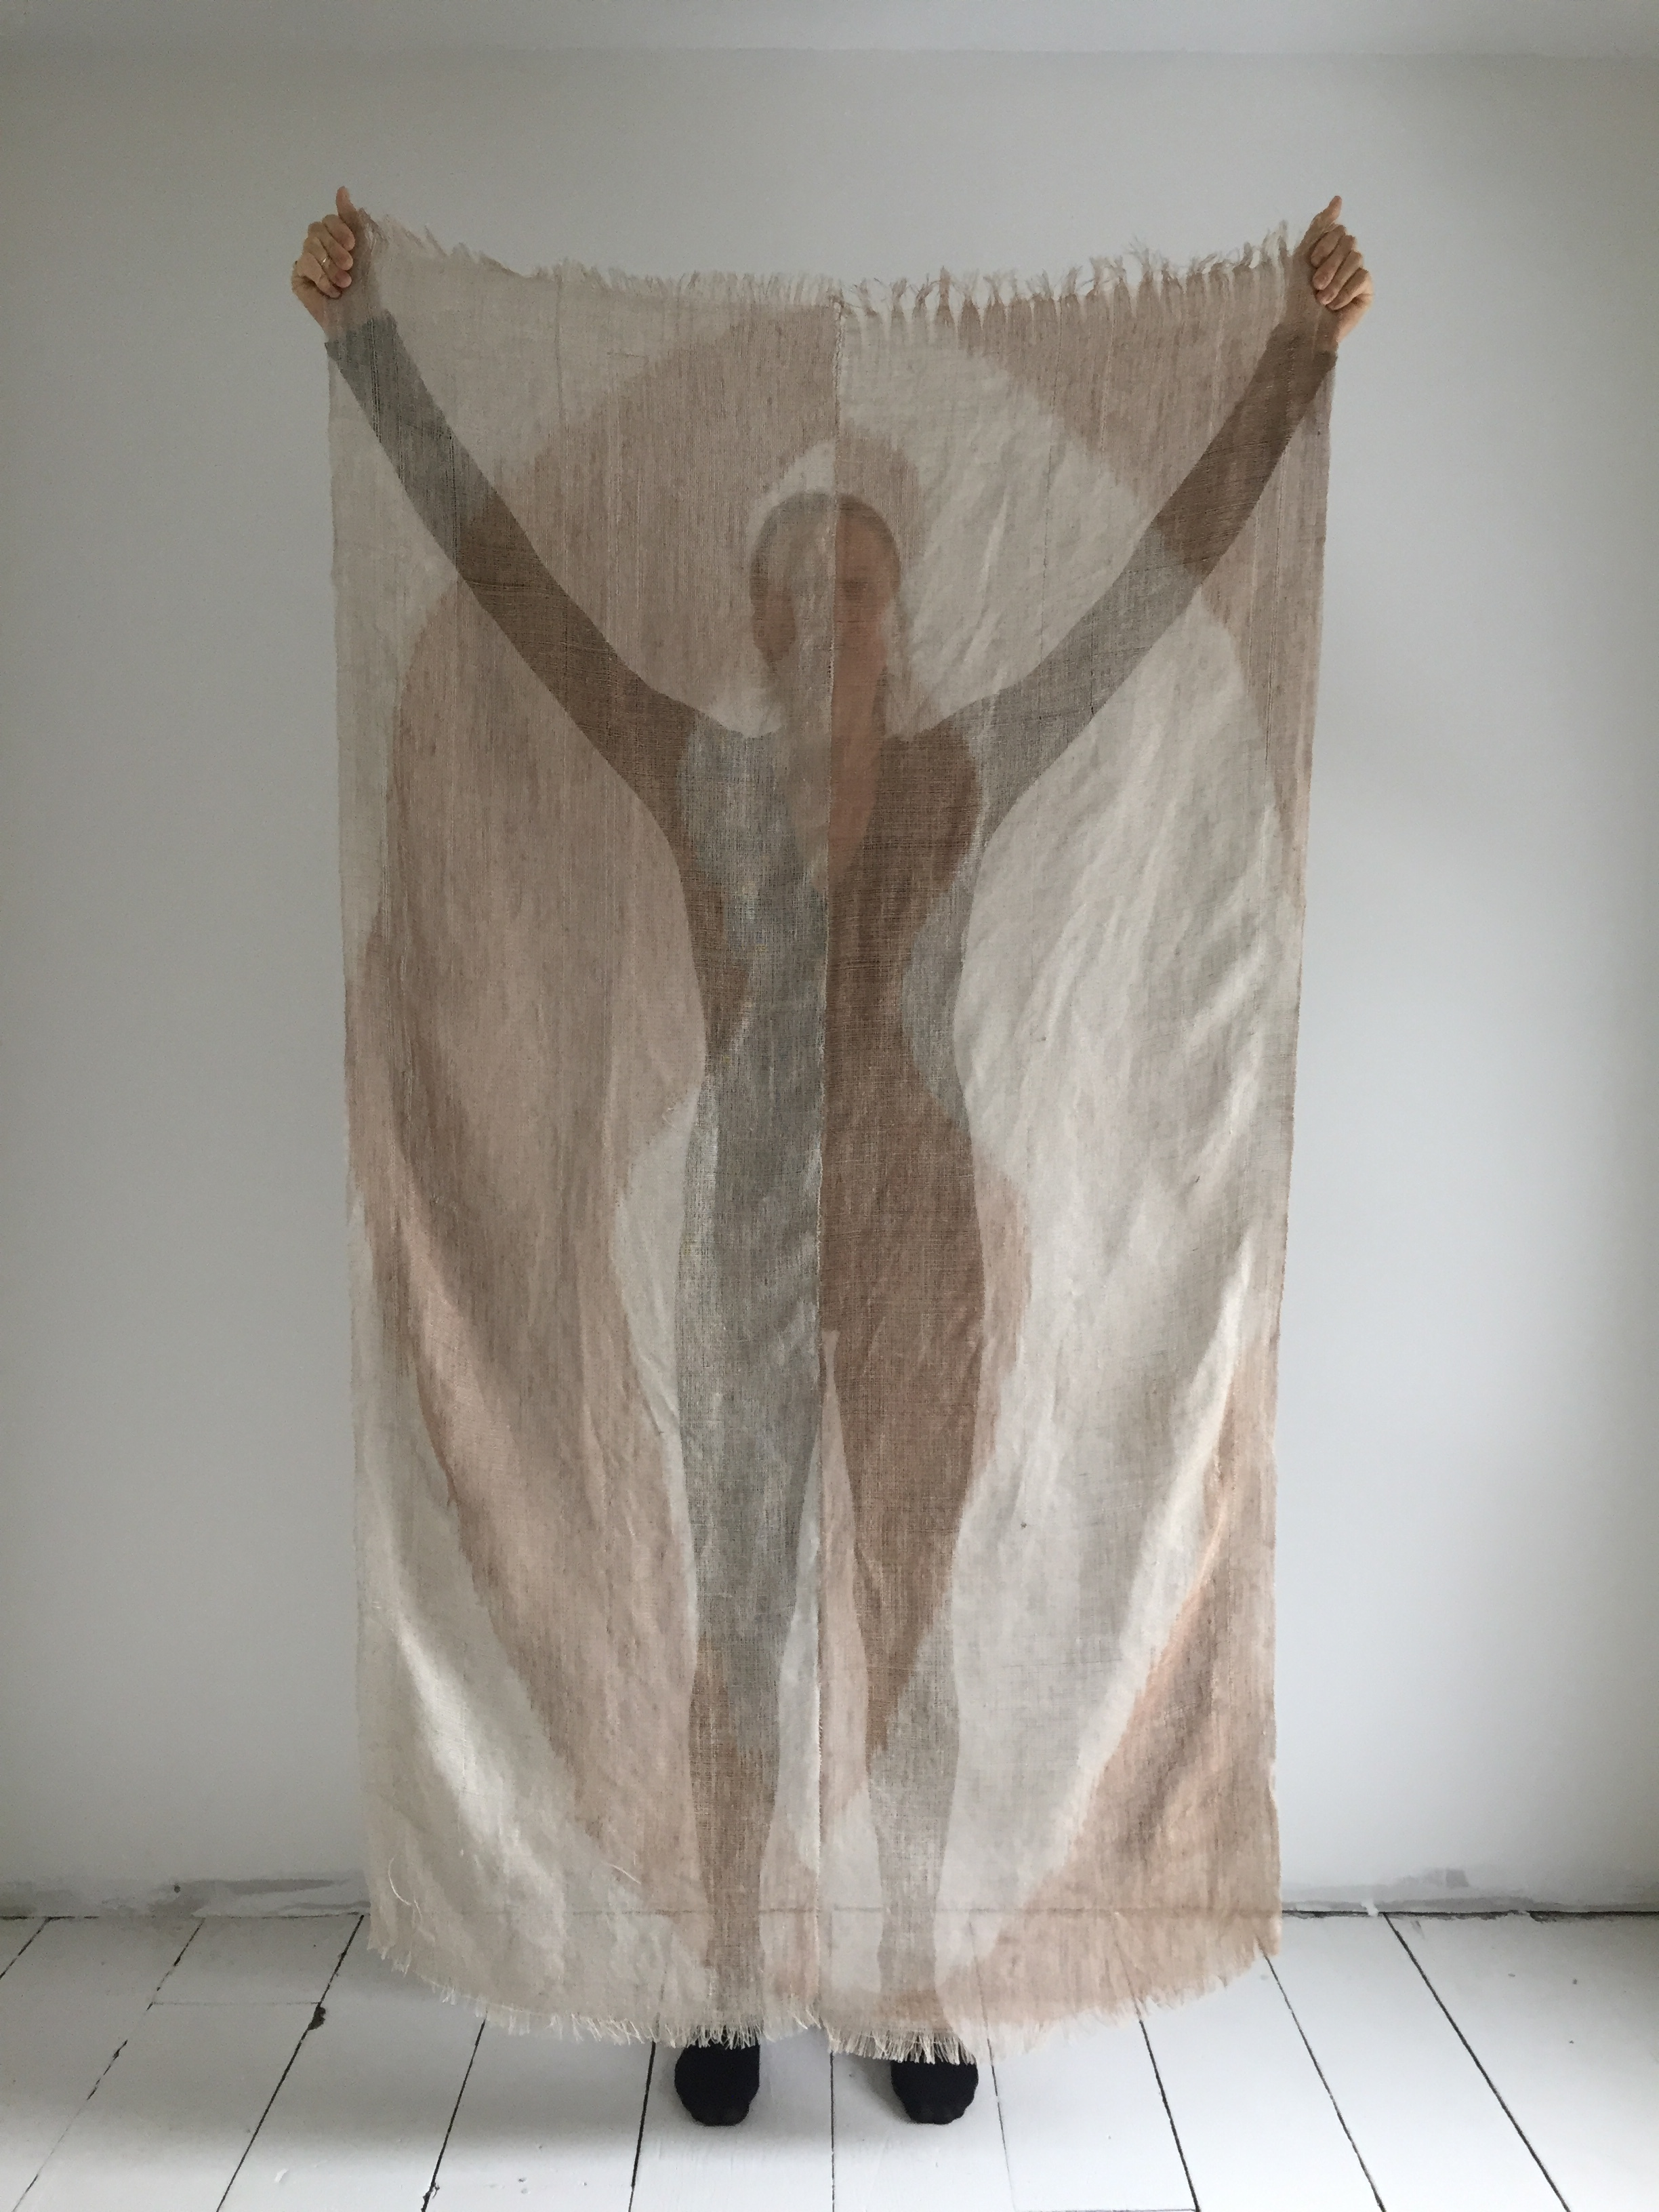 Shroud was woven as two separate panels, painted with foraged clay from the land I live on. The piece was a submission for a publication that explores the feminine as a principle of humanizing and repairing relationship, and whose proceeds support birthing justice. The piece was cut into 144 squares and distributed with the first round of printing, as an offering to unweave and unravel personal and collective conditioning.